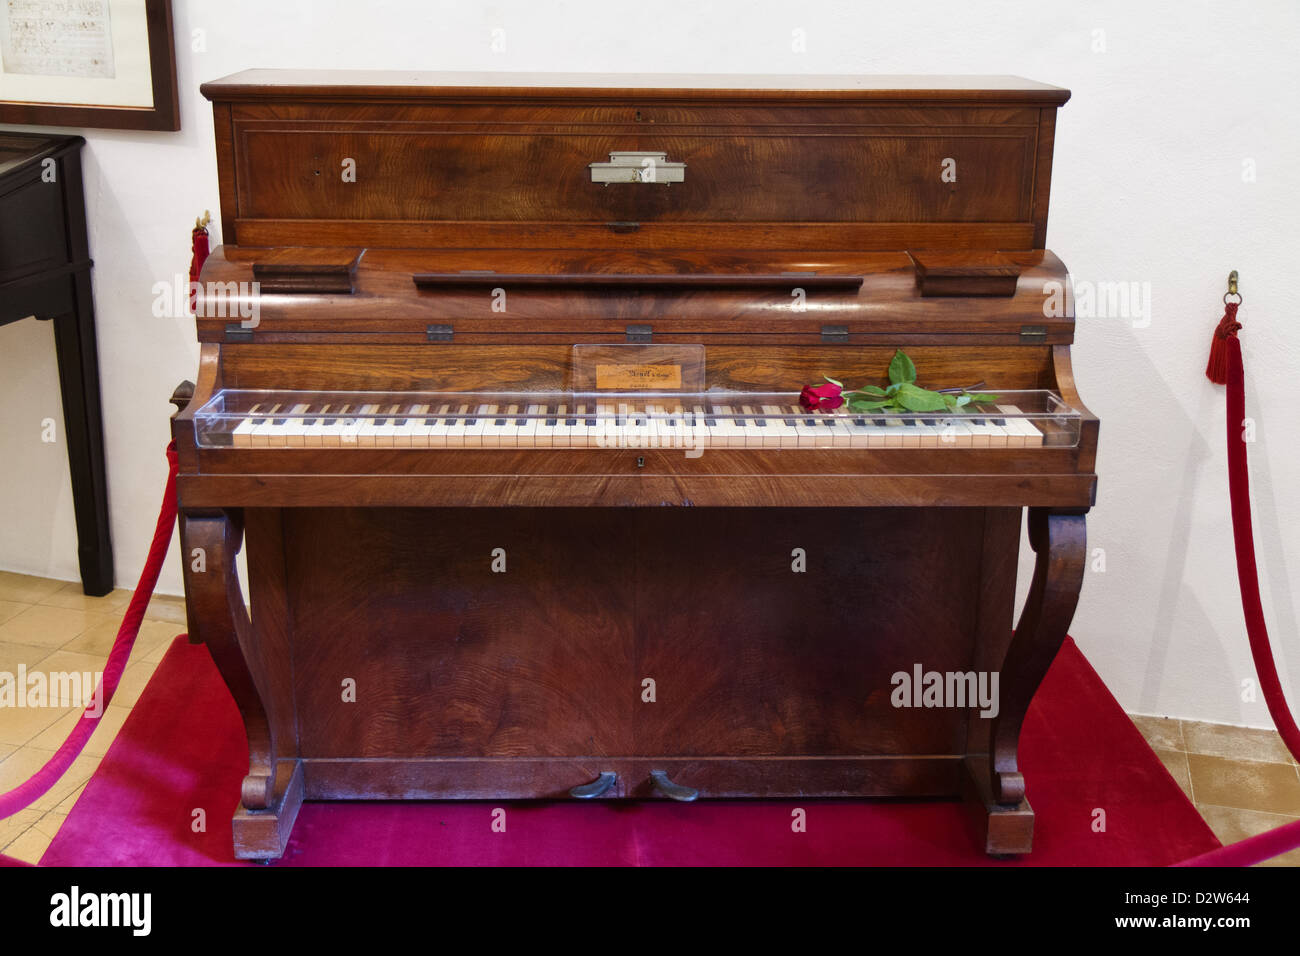 The old Pleyel piano used by Frédéric Chopin at the Royal Carthusian Monastery (Real Cartuja), Valldemossa, - Stock Image